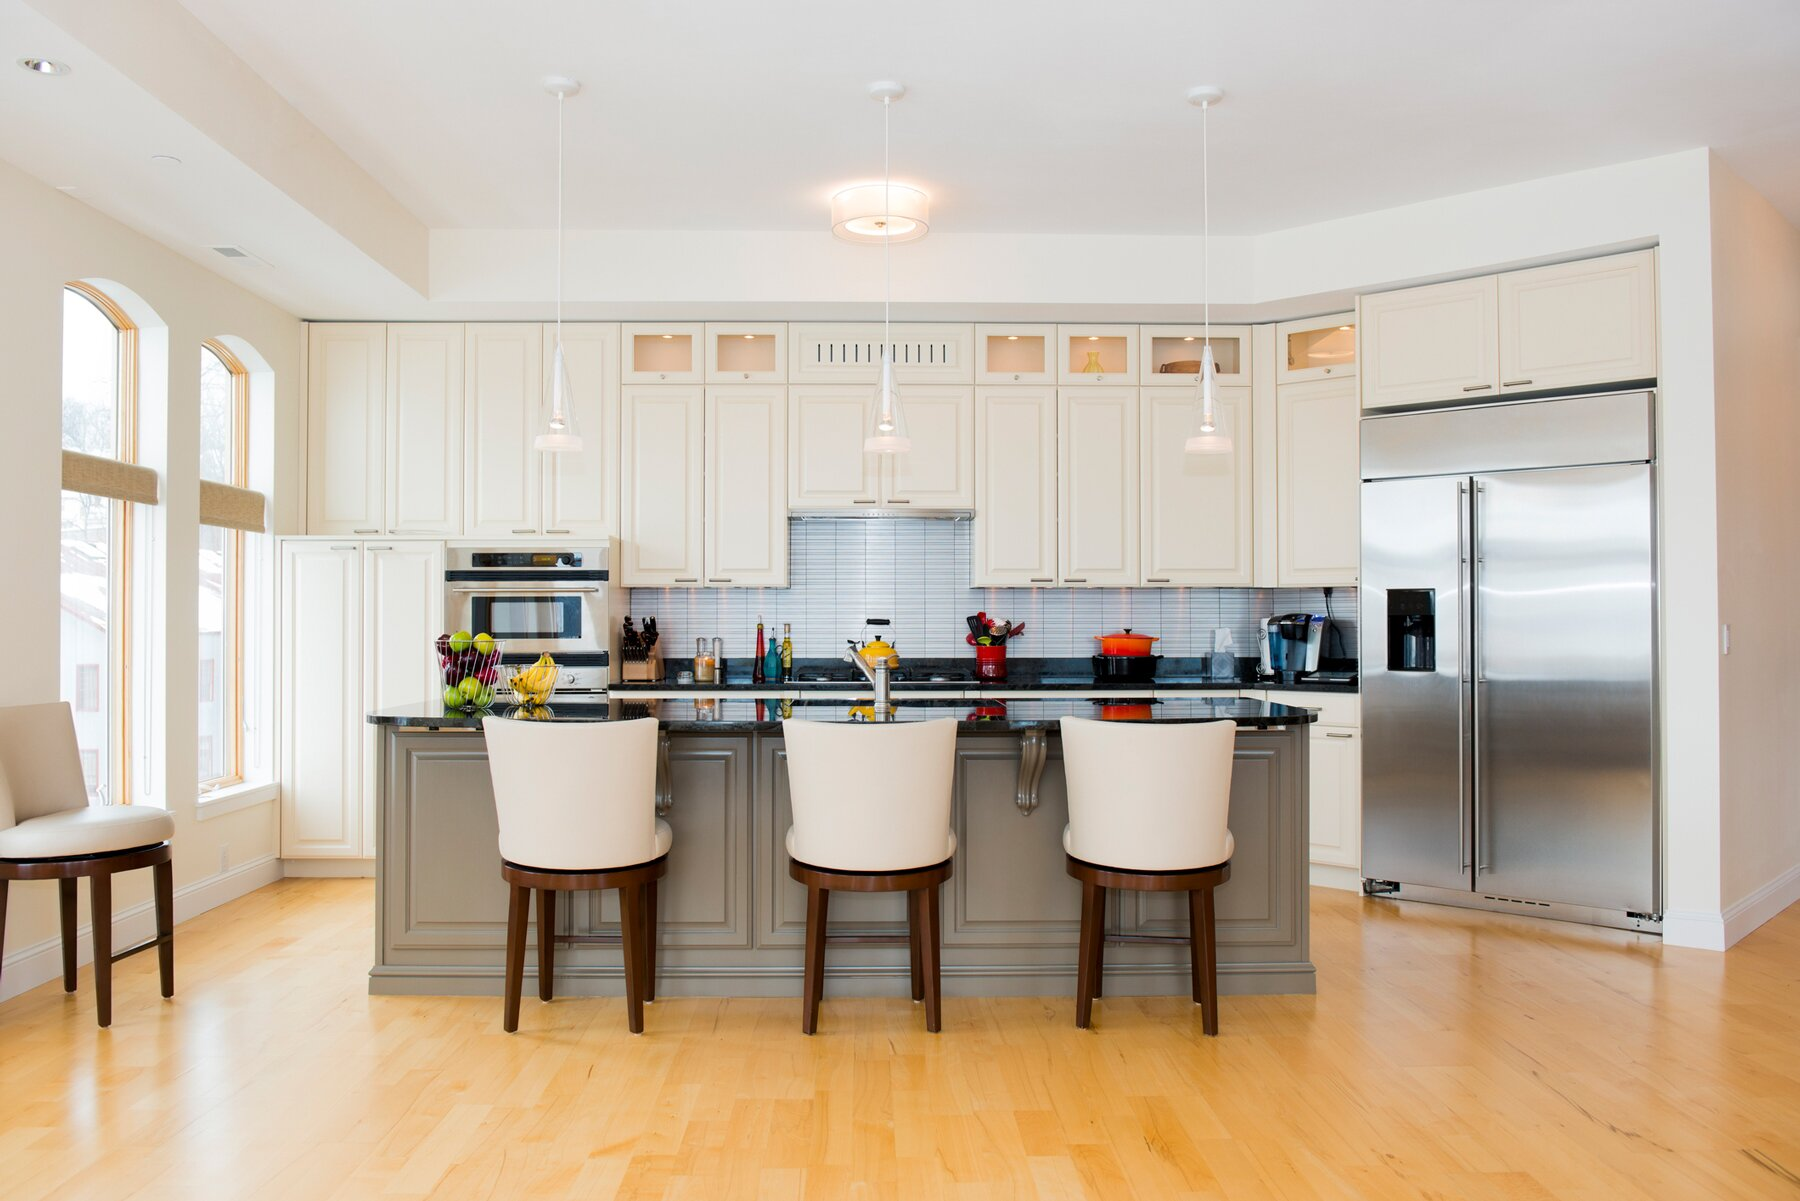 Kitchen Cabinets Or Replace Them